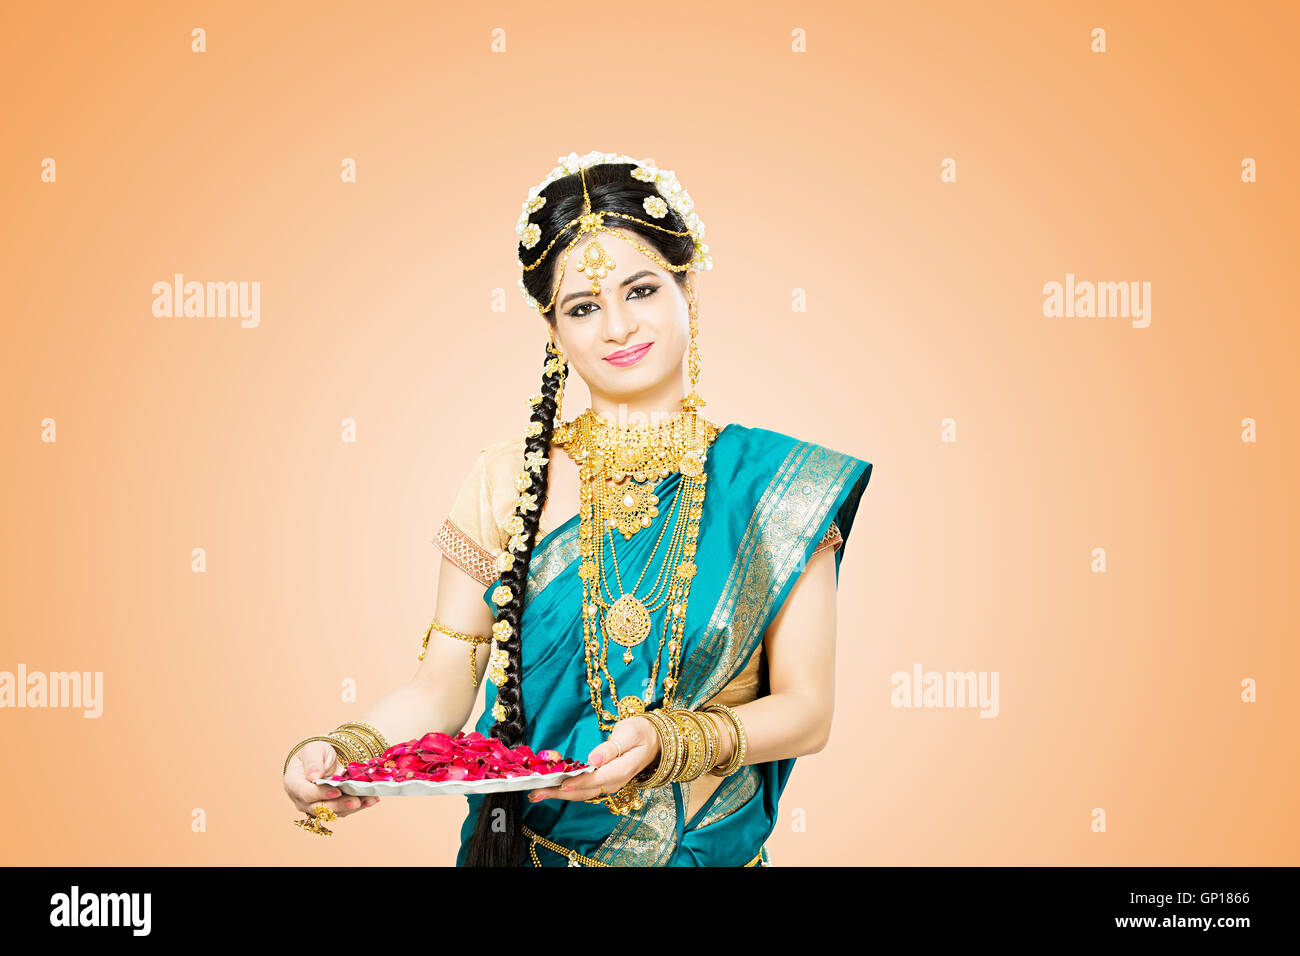 1 Beautiful Adult Bride Tamil Woman diwali Festival standing holding